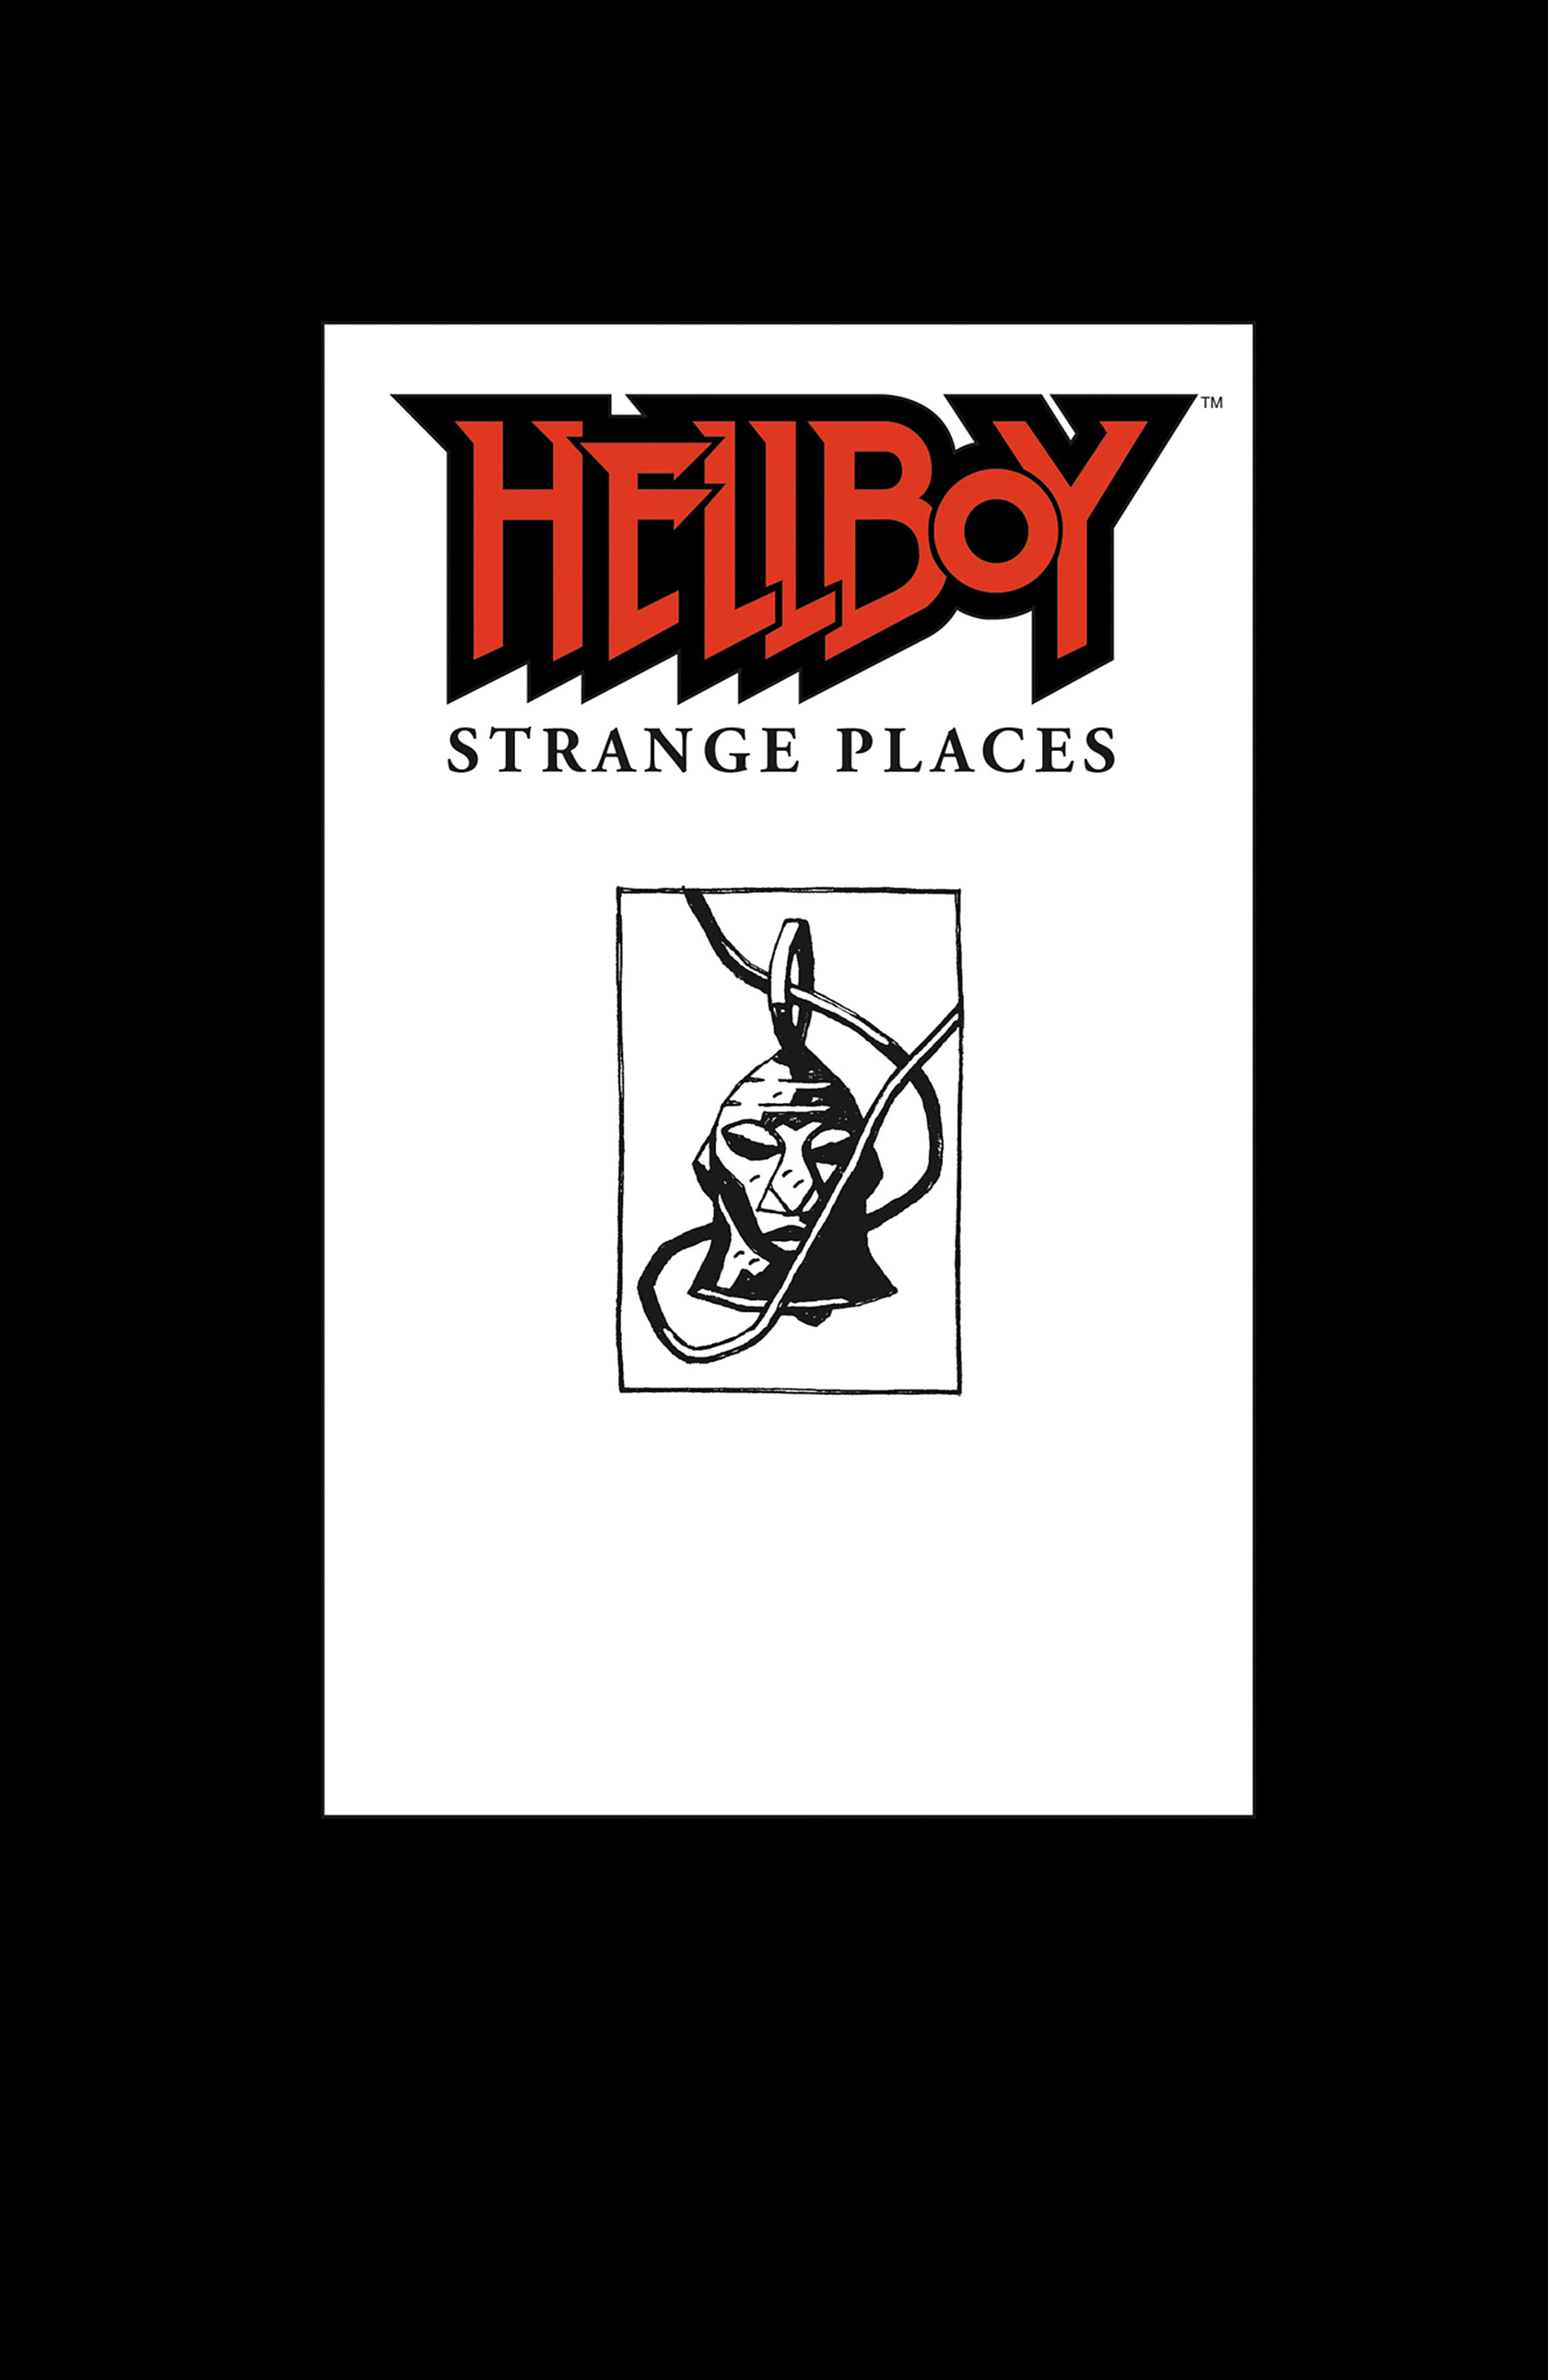 Read online Hellboy: Strange Places comic -  Issue # TPB - 2